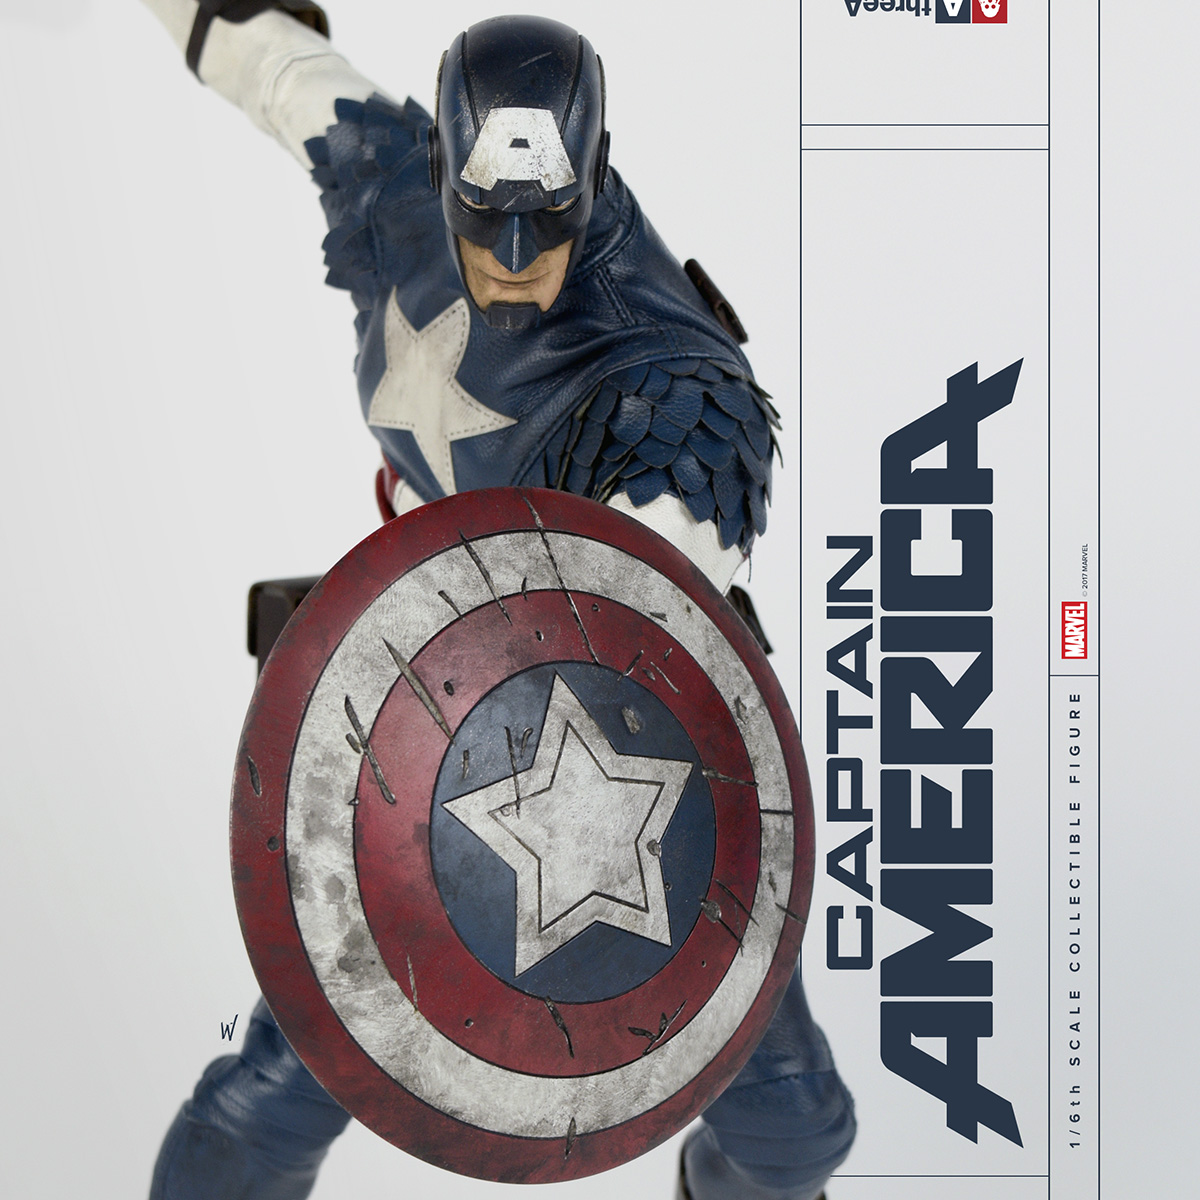 3A_Marvel_CaptainAmerica_Square_Ad_005brev.jpg